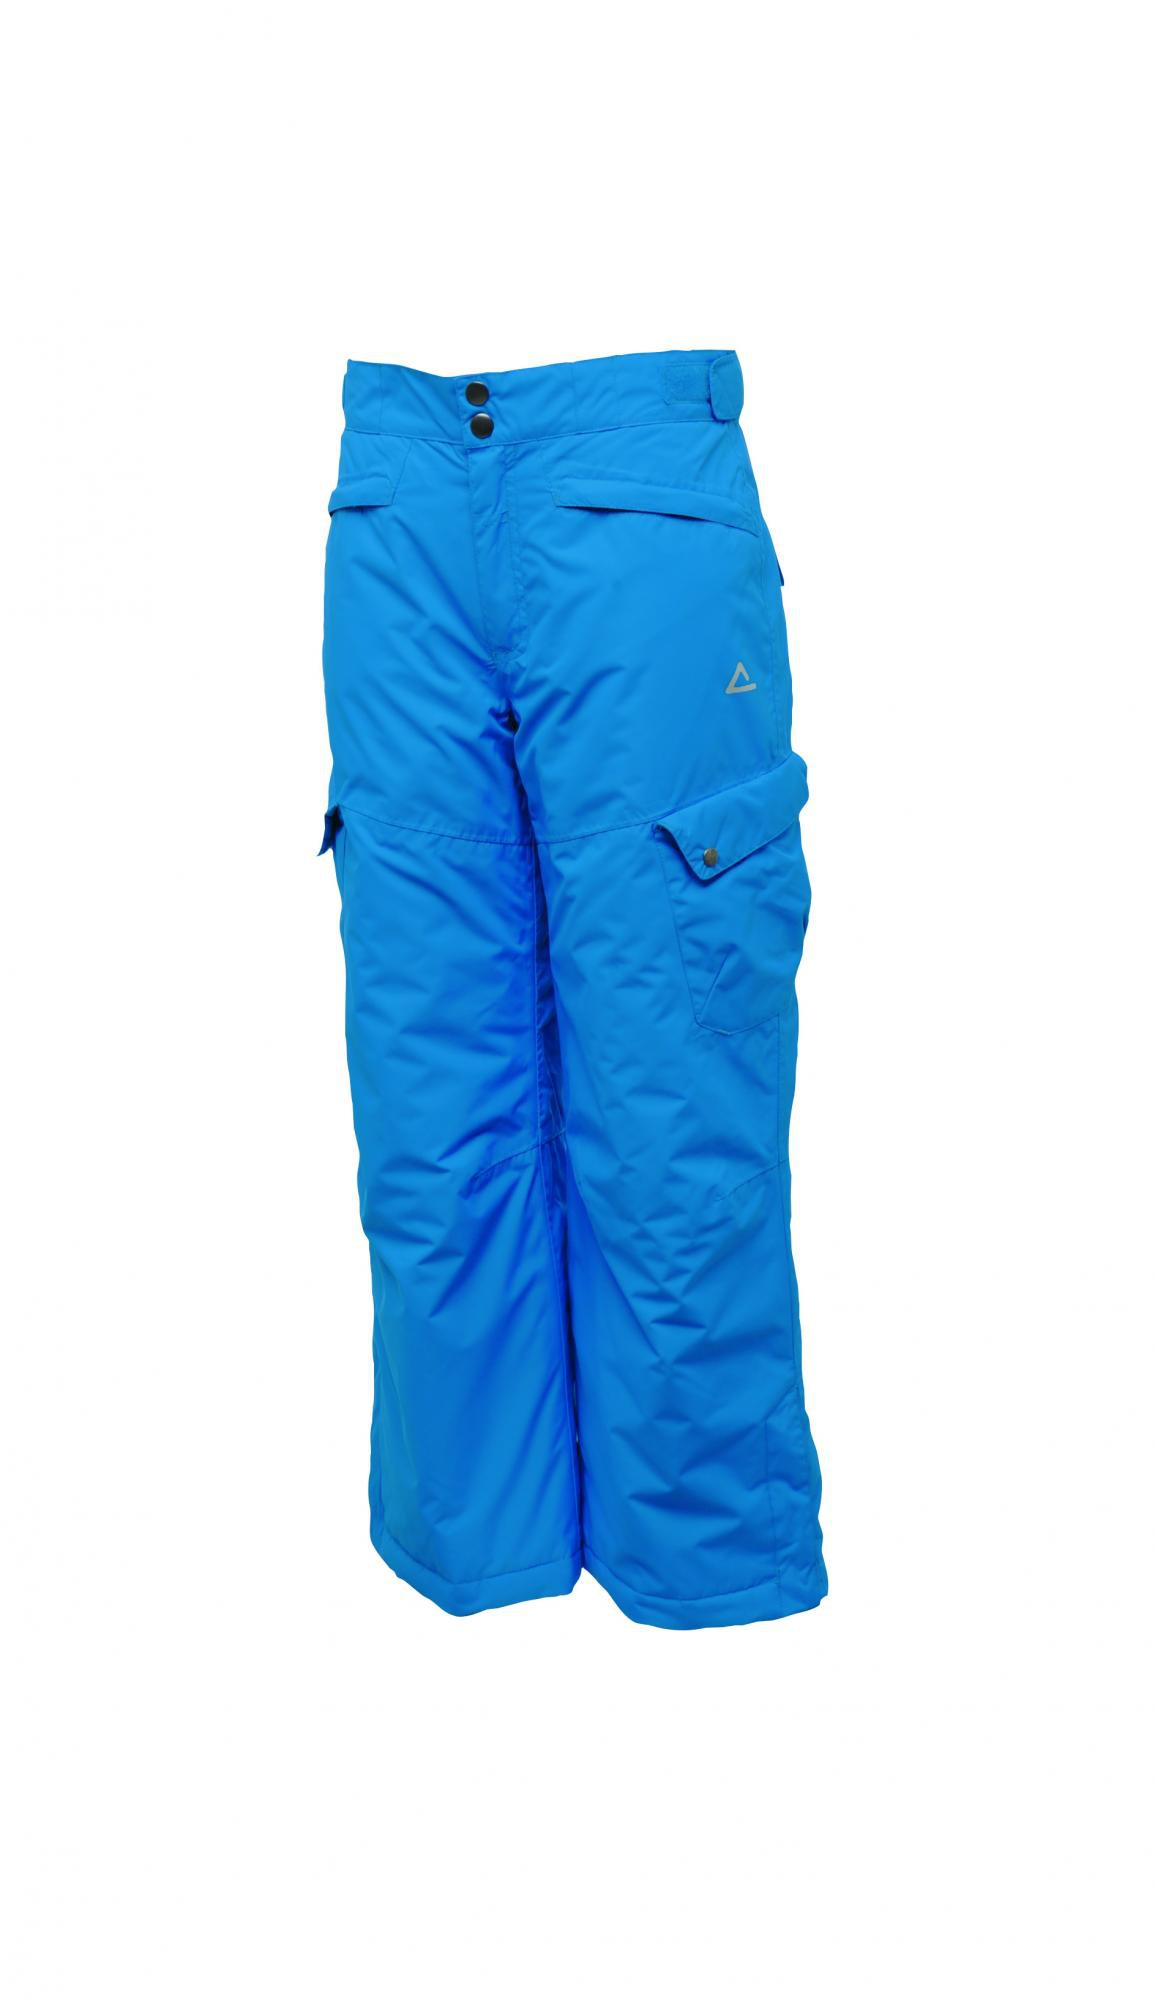 Dare2b-Stomp-it-out-Unisex-Waterproof-Breathable-Ski-Trousers